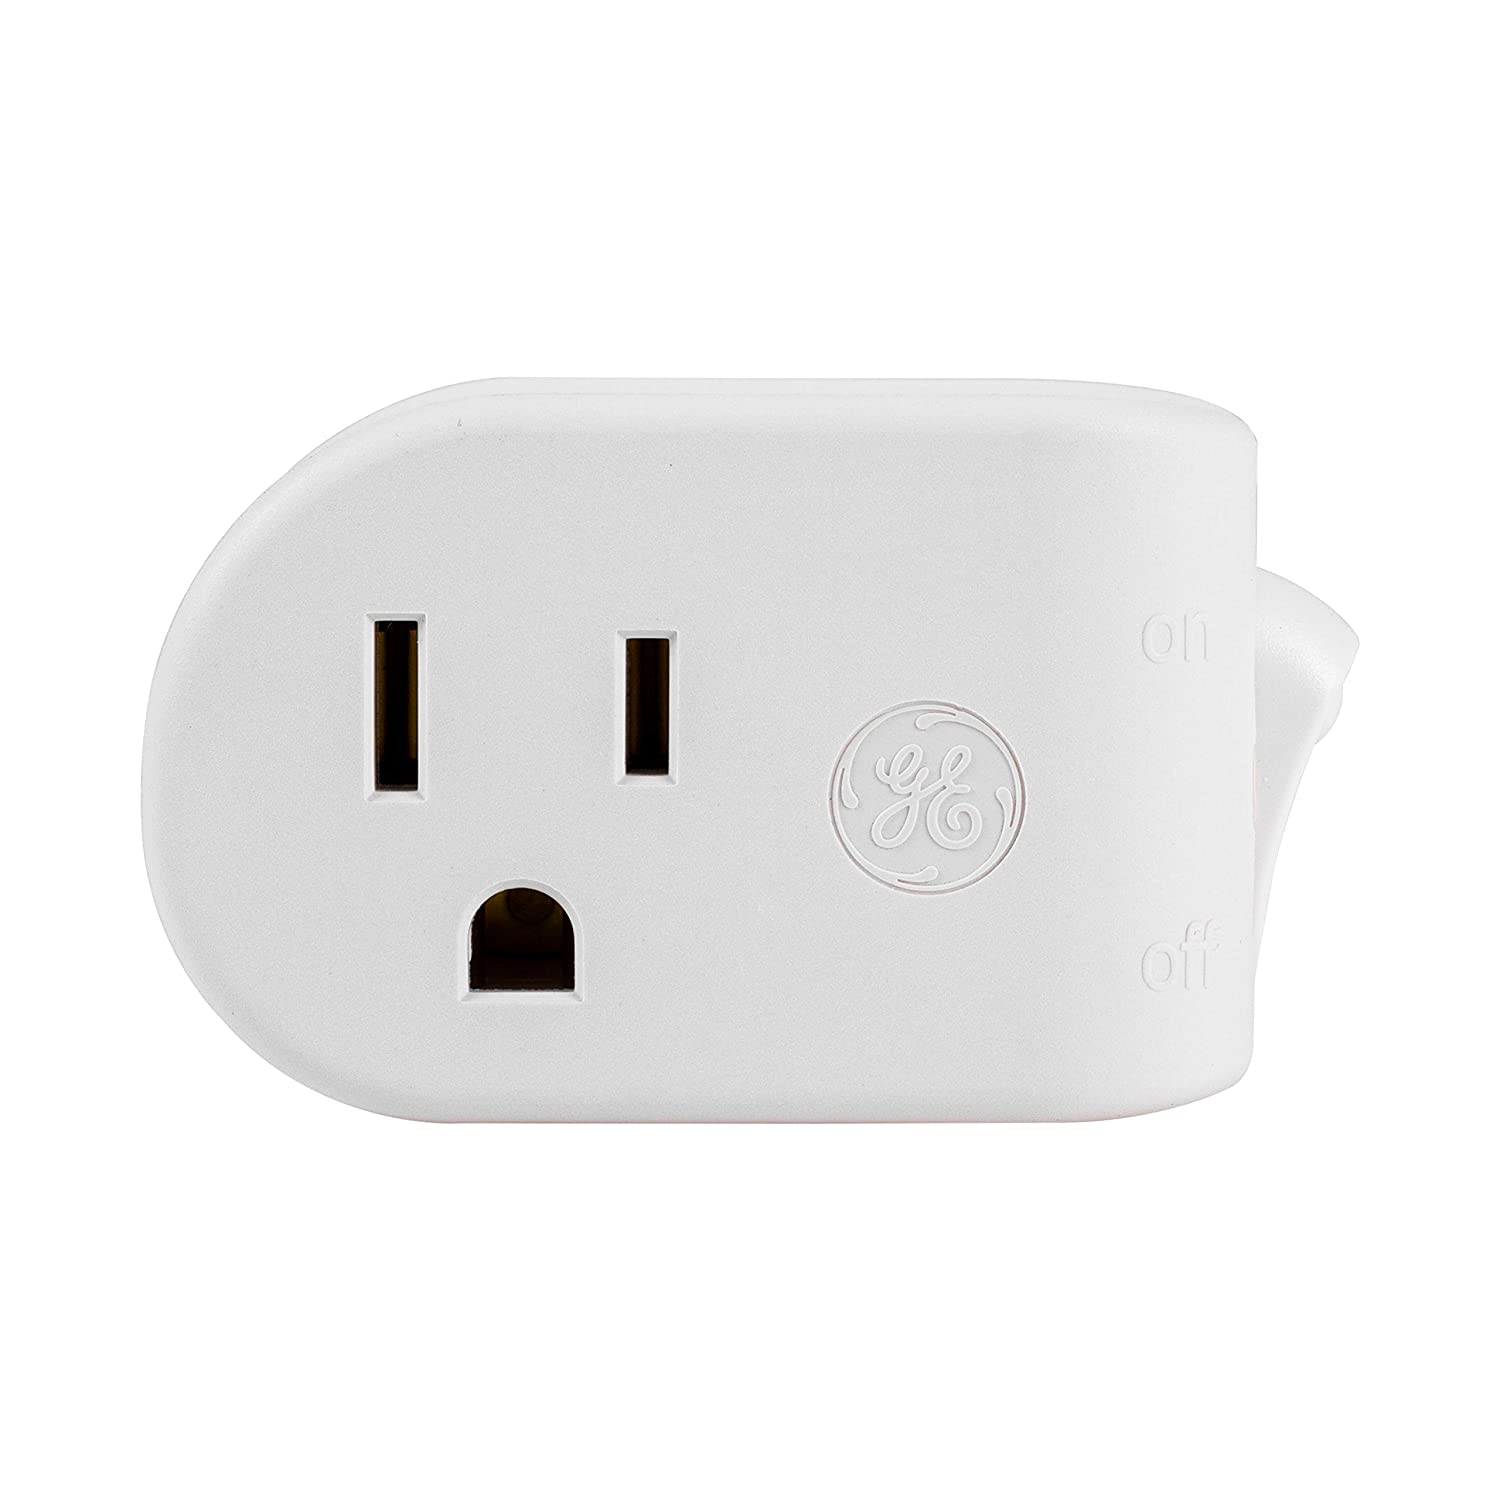 Ge Grounded On Off Power Switch Plug In White Energy Efficient Wiring Outlets And Switches The Safe Easy Way Family Space Saving Design Ul Listed 15a 120vac 1800w 25511